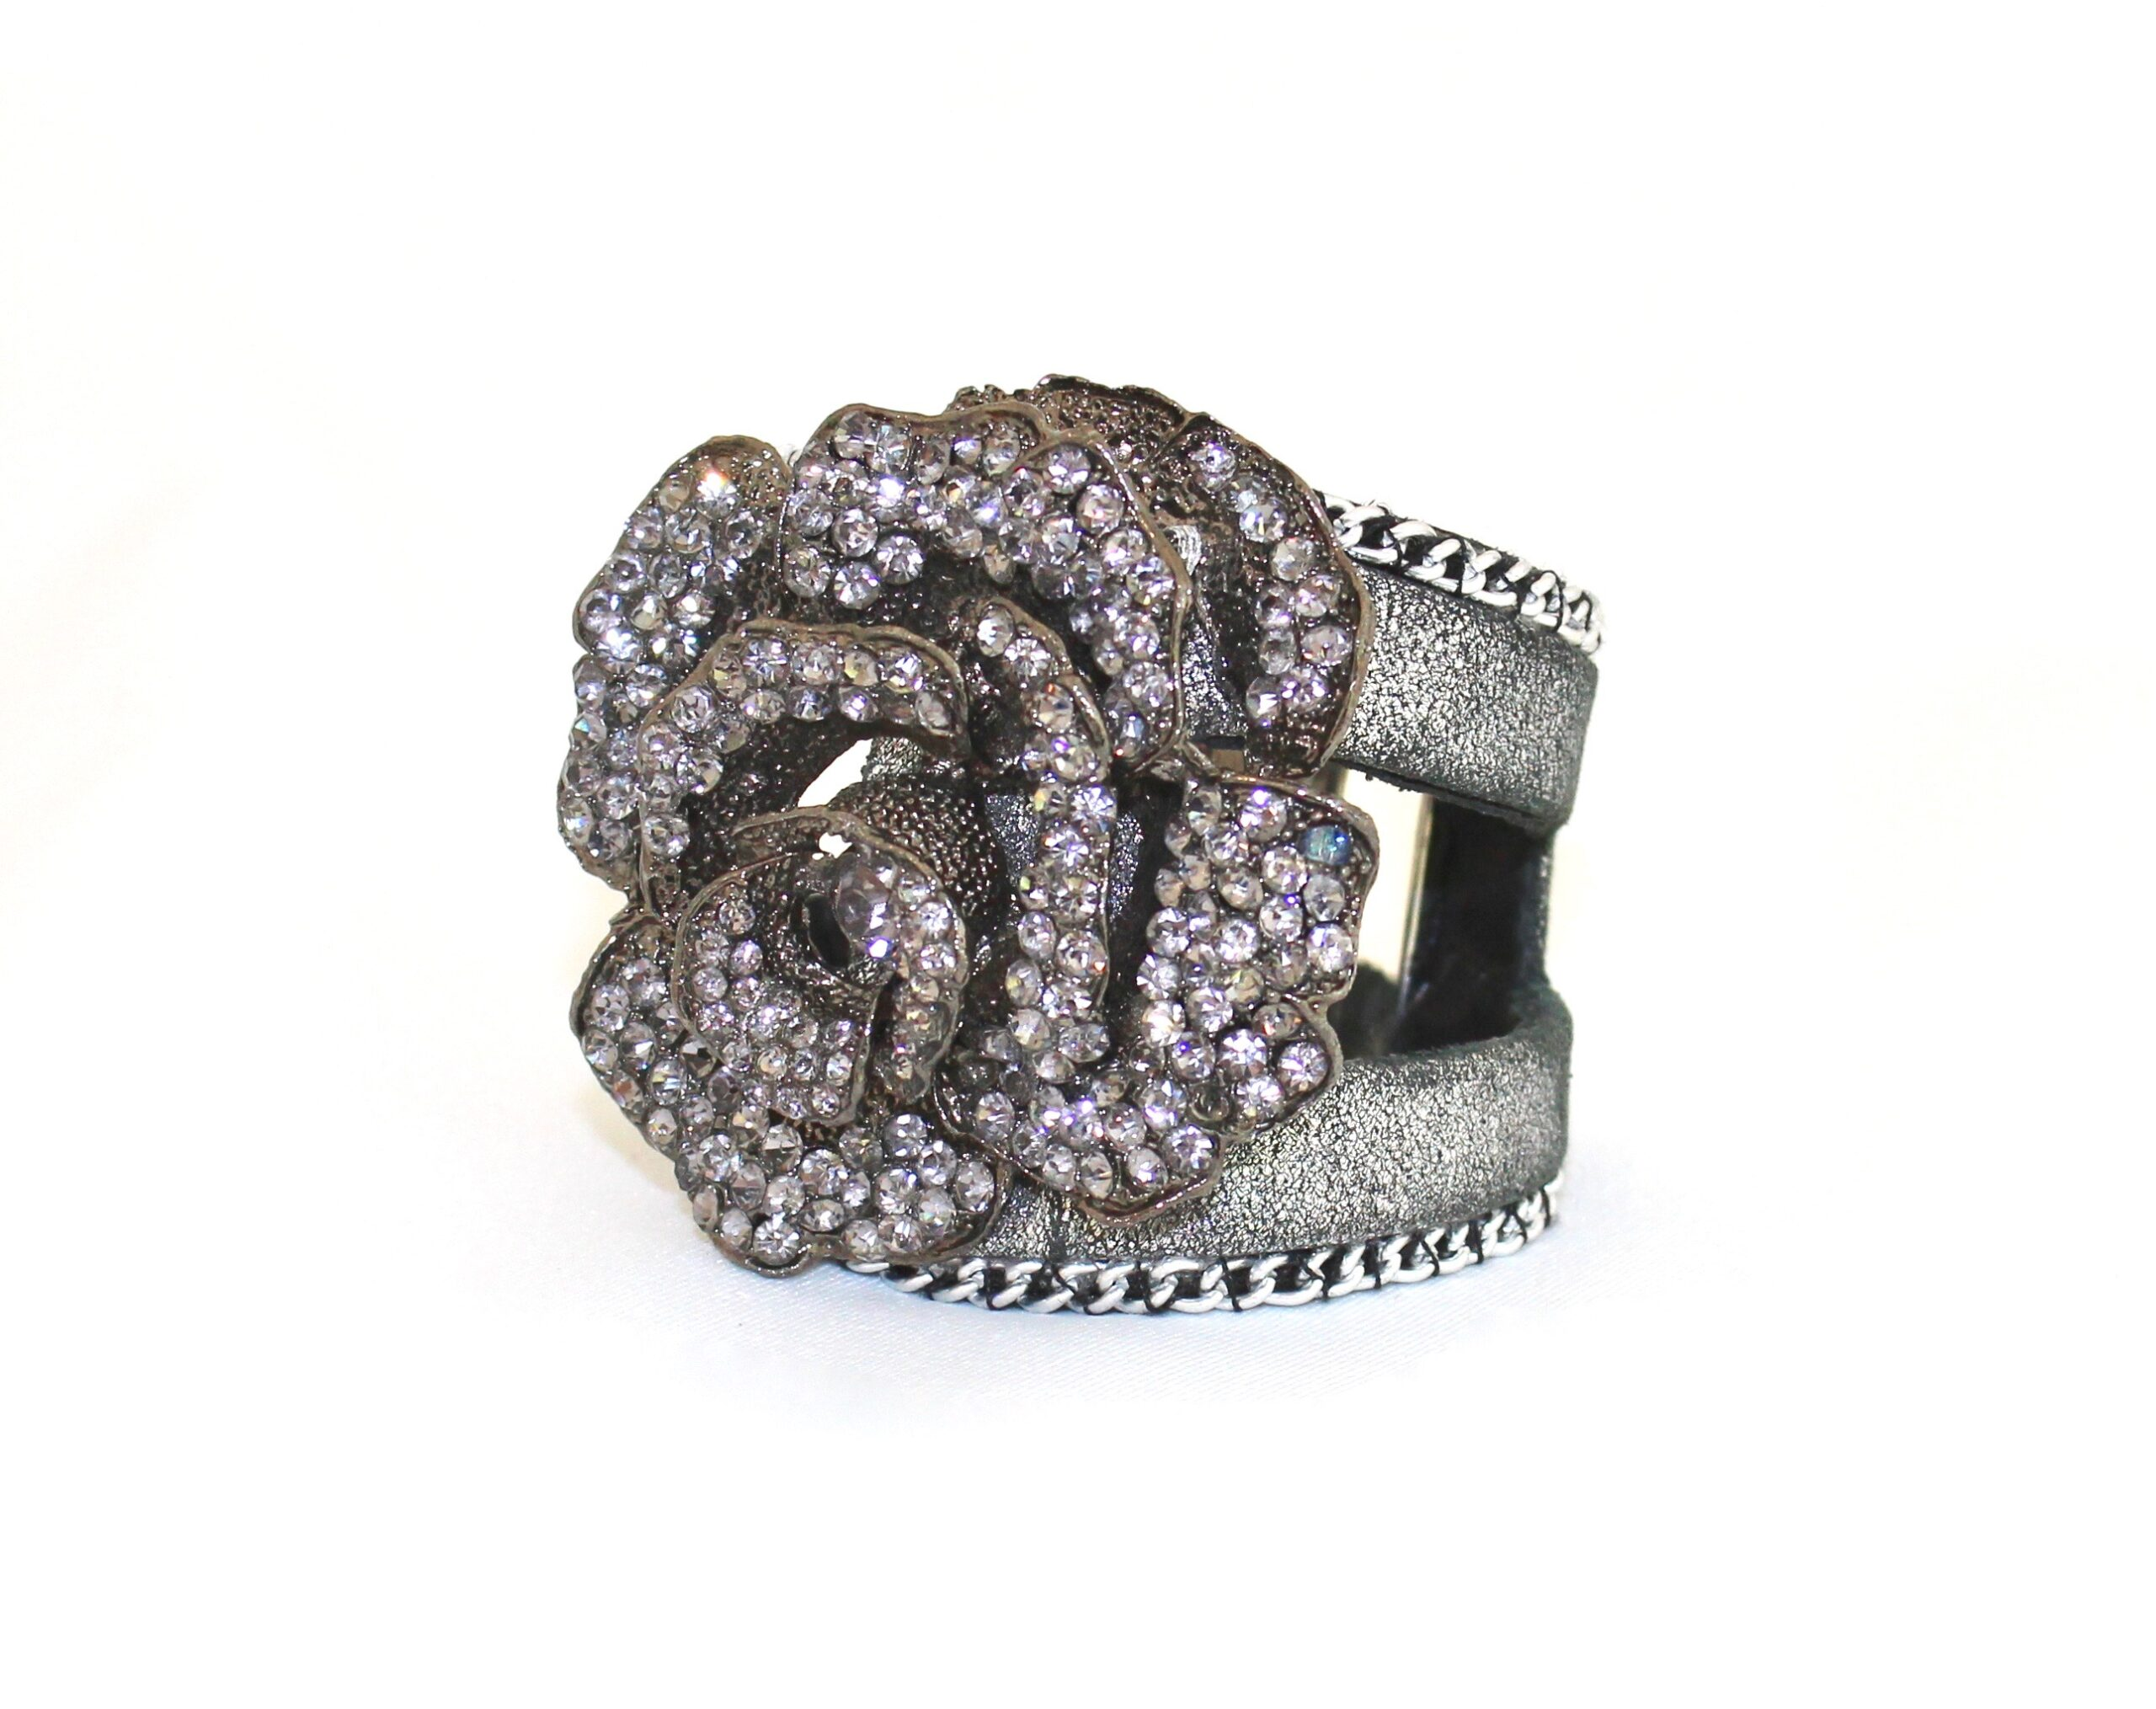 Kate Younger Designs Samantha's Cuff